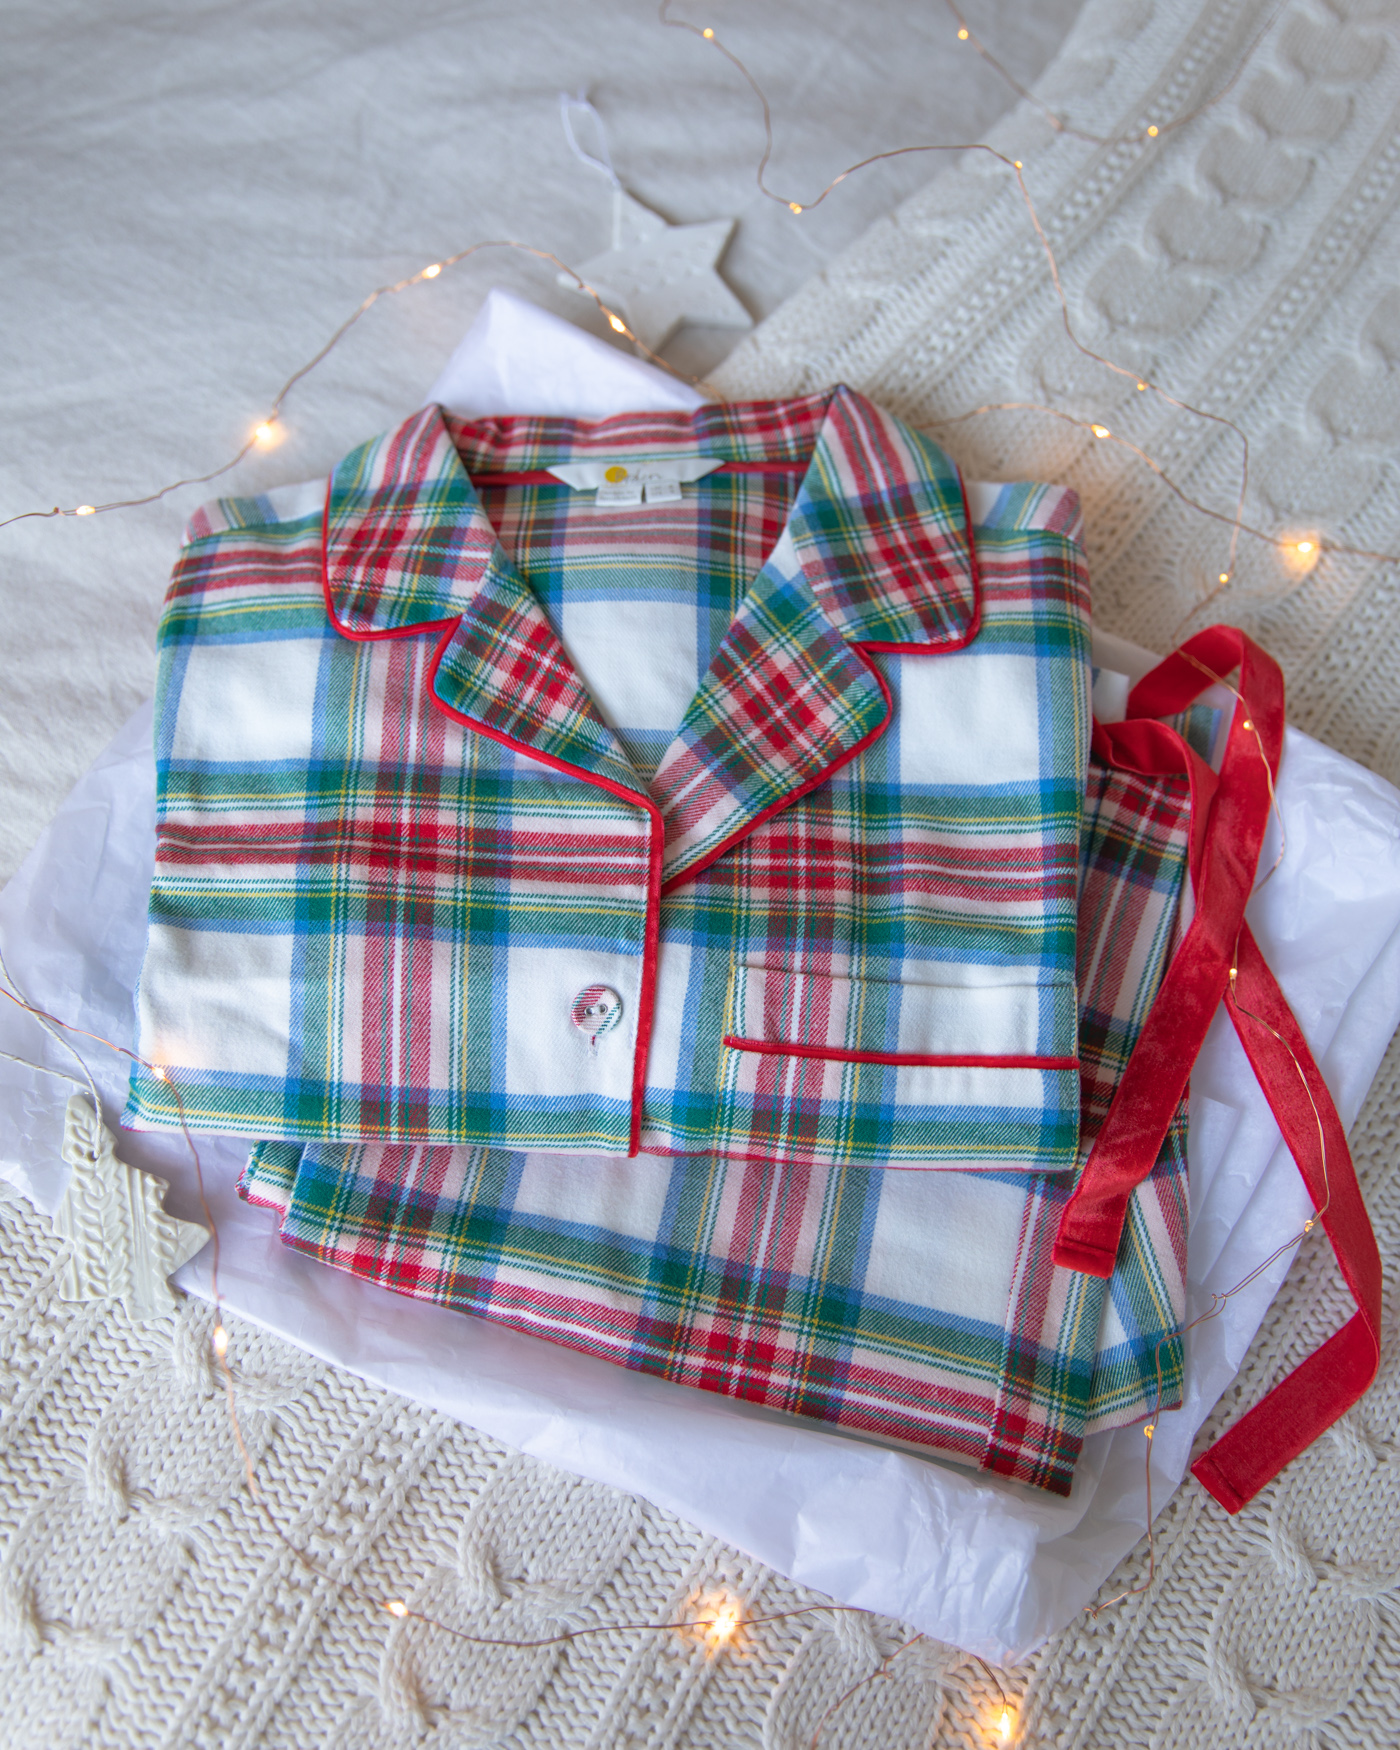 Boden check pyjamas for Christmas